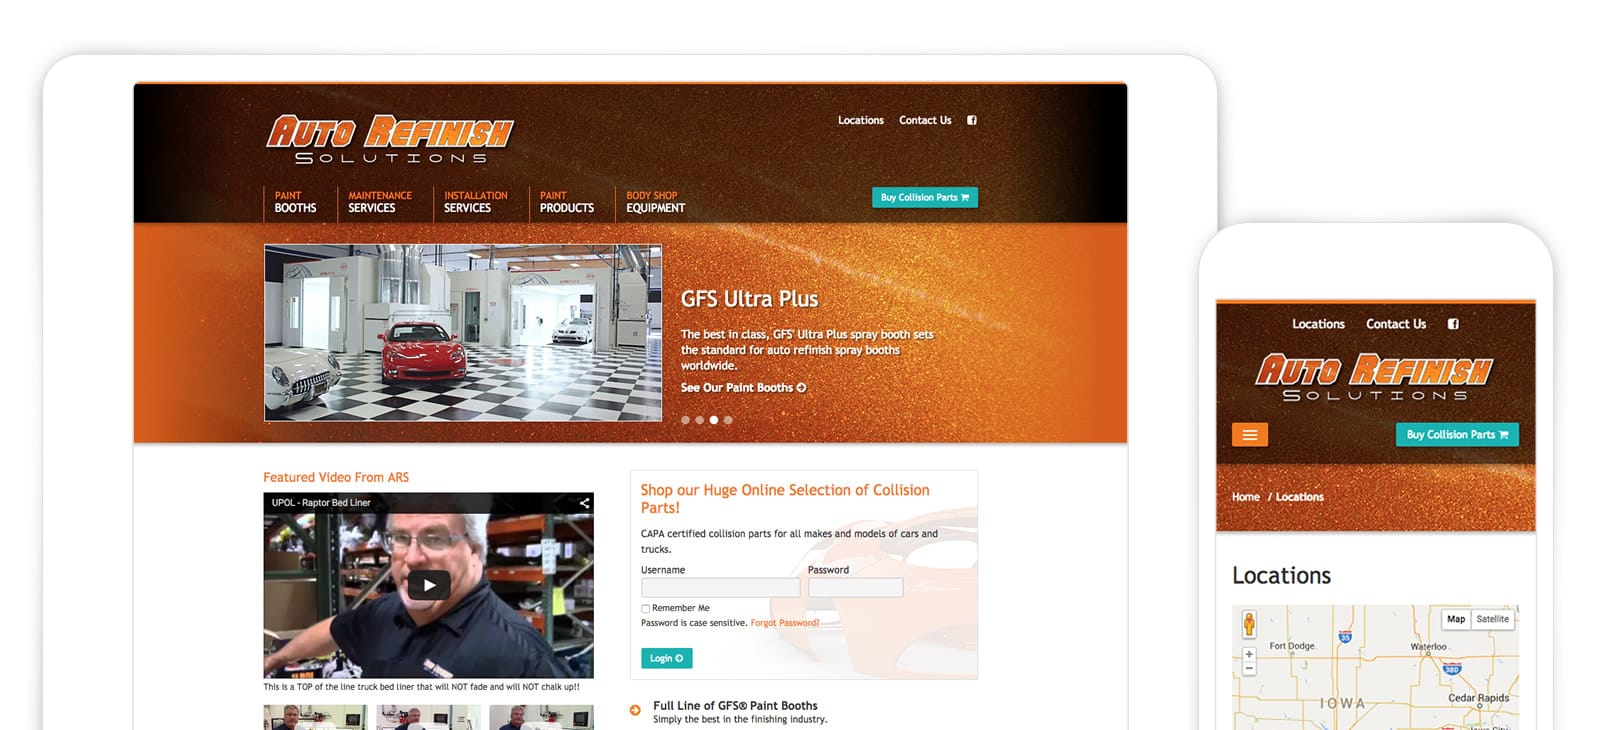 Auto Refinish Website Design